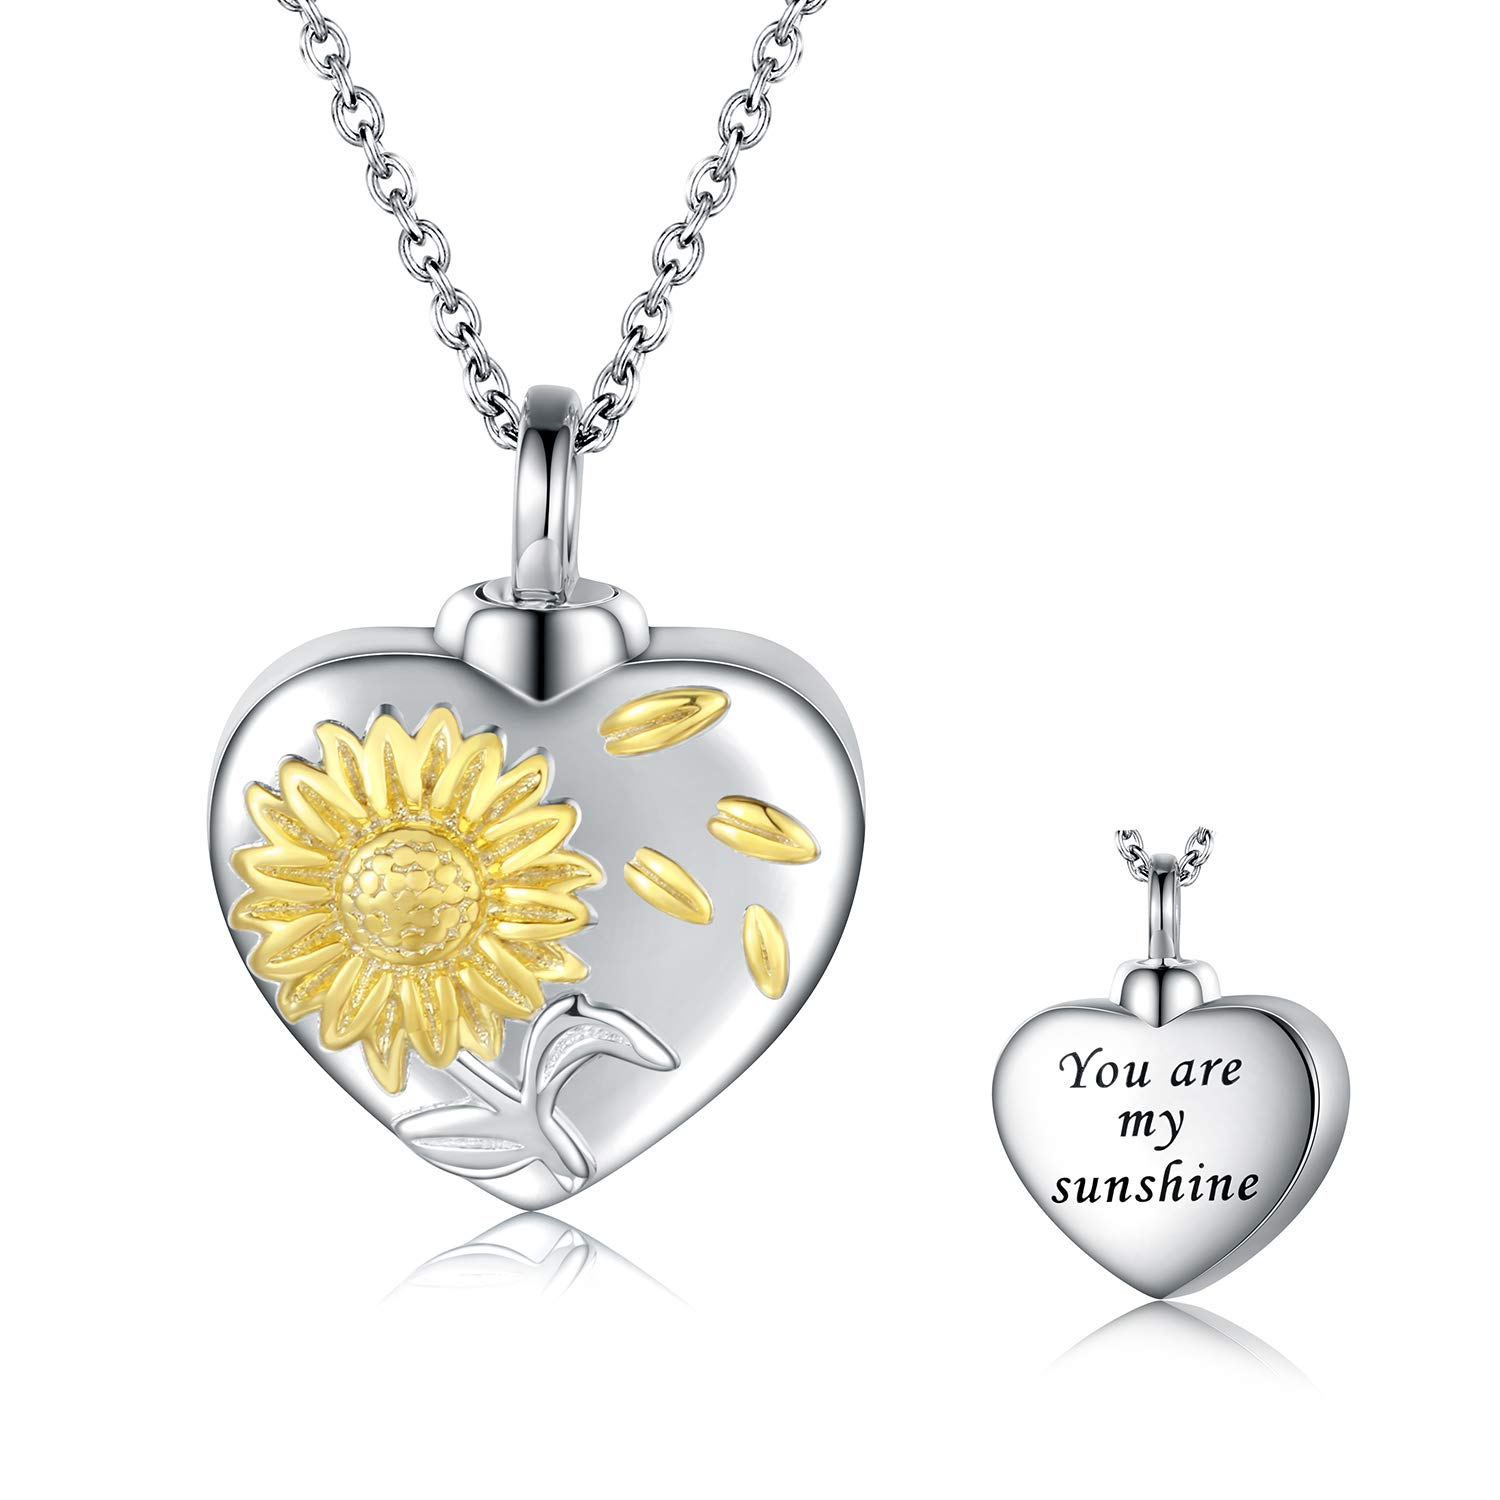 Sunflower Urn Pendant Necklace 925 Sterling Silver keepsakes Cremation Jewelry for Ashes Necklace You are my sunshine Cremation Memorial Always in My Heart Memory Necklace Gift